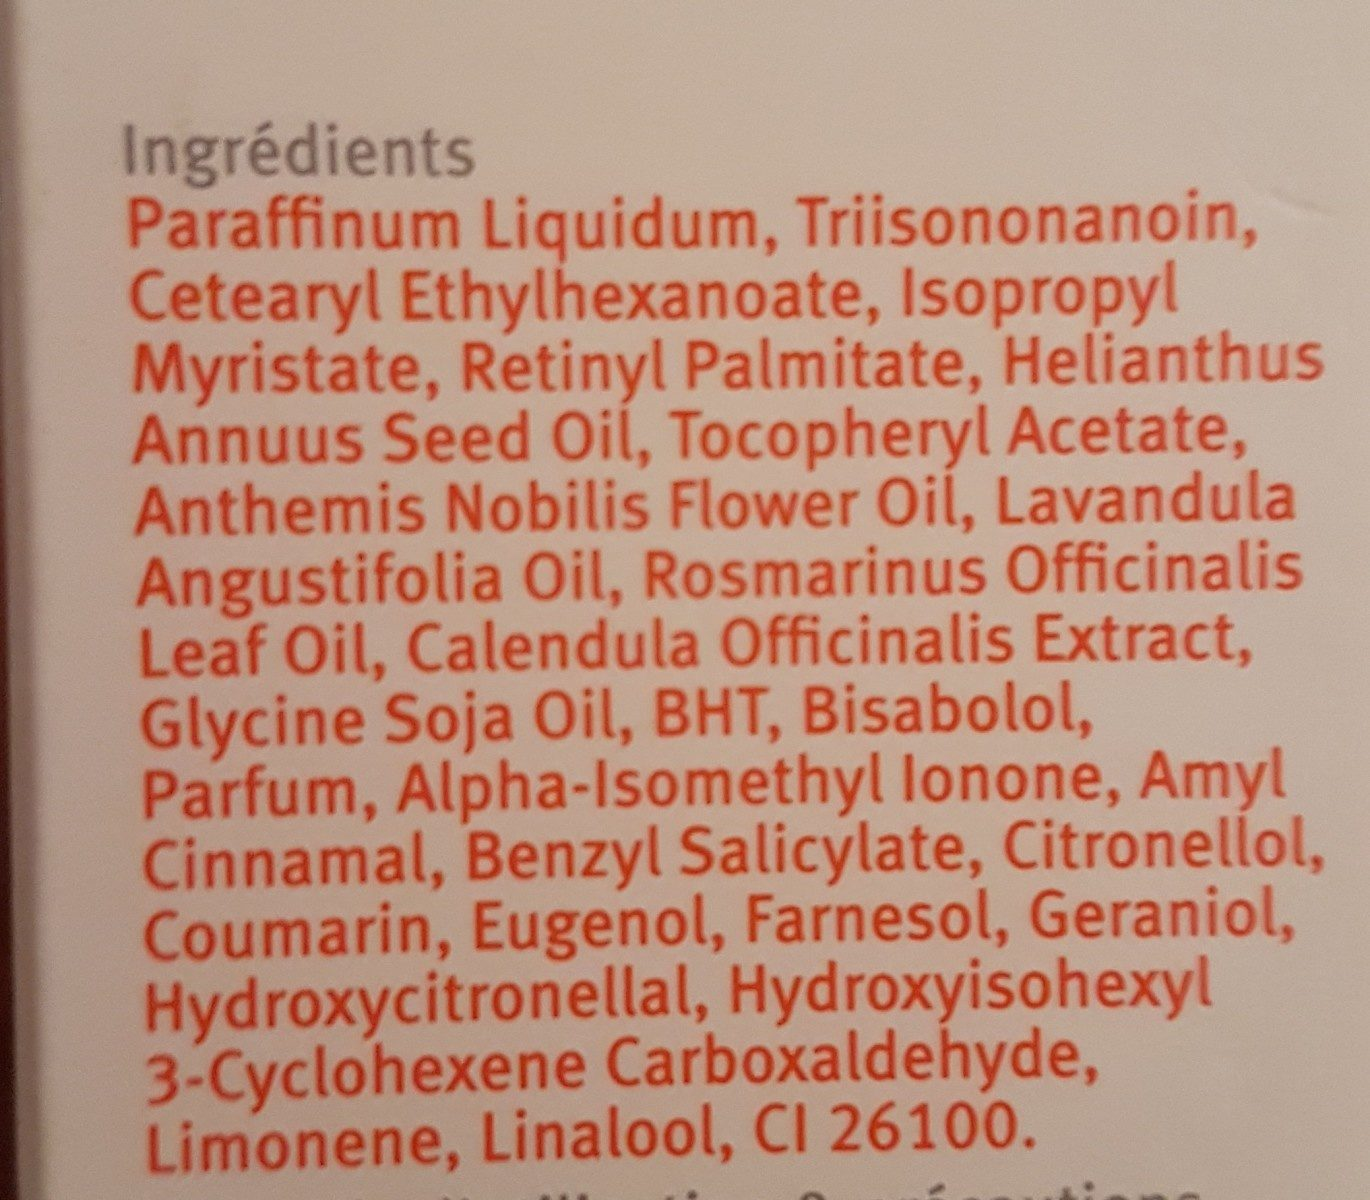 Soin de la peau (CICATRICES, VERGETURES, TEINT IRRÉGULIER) - Ingredients